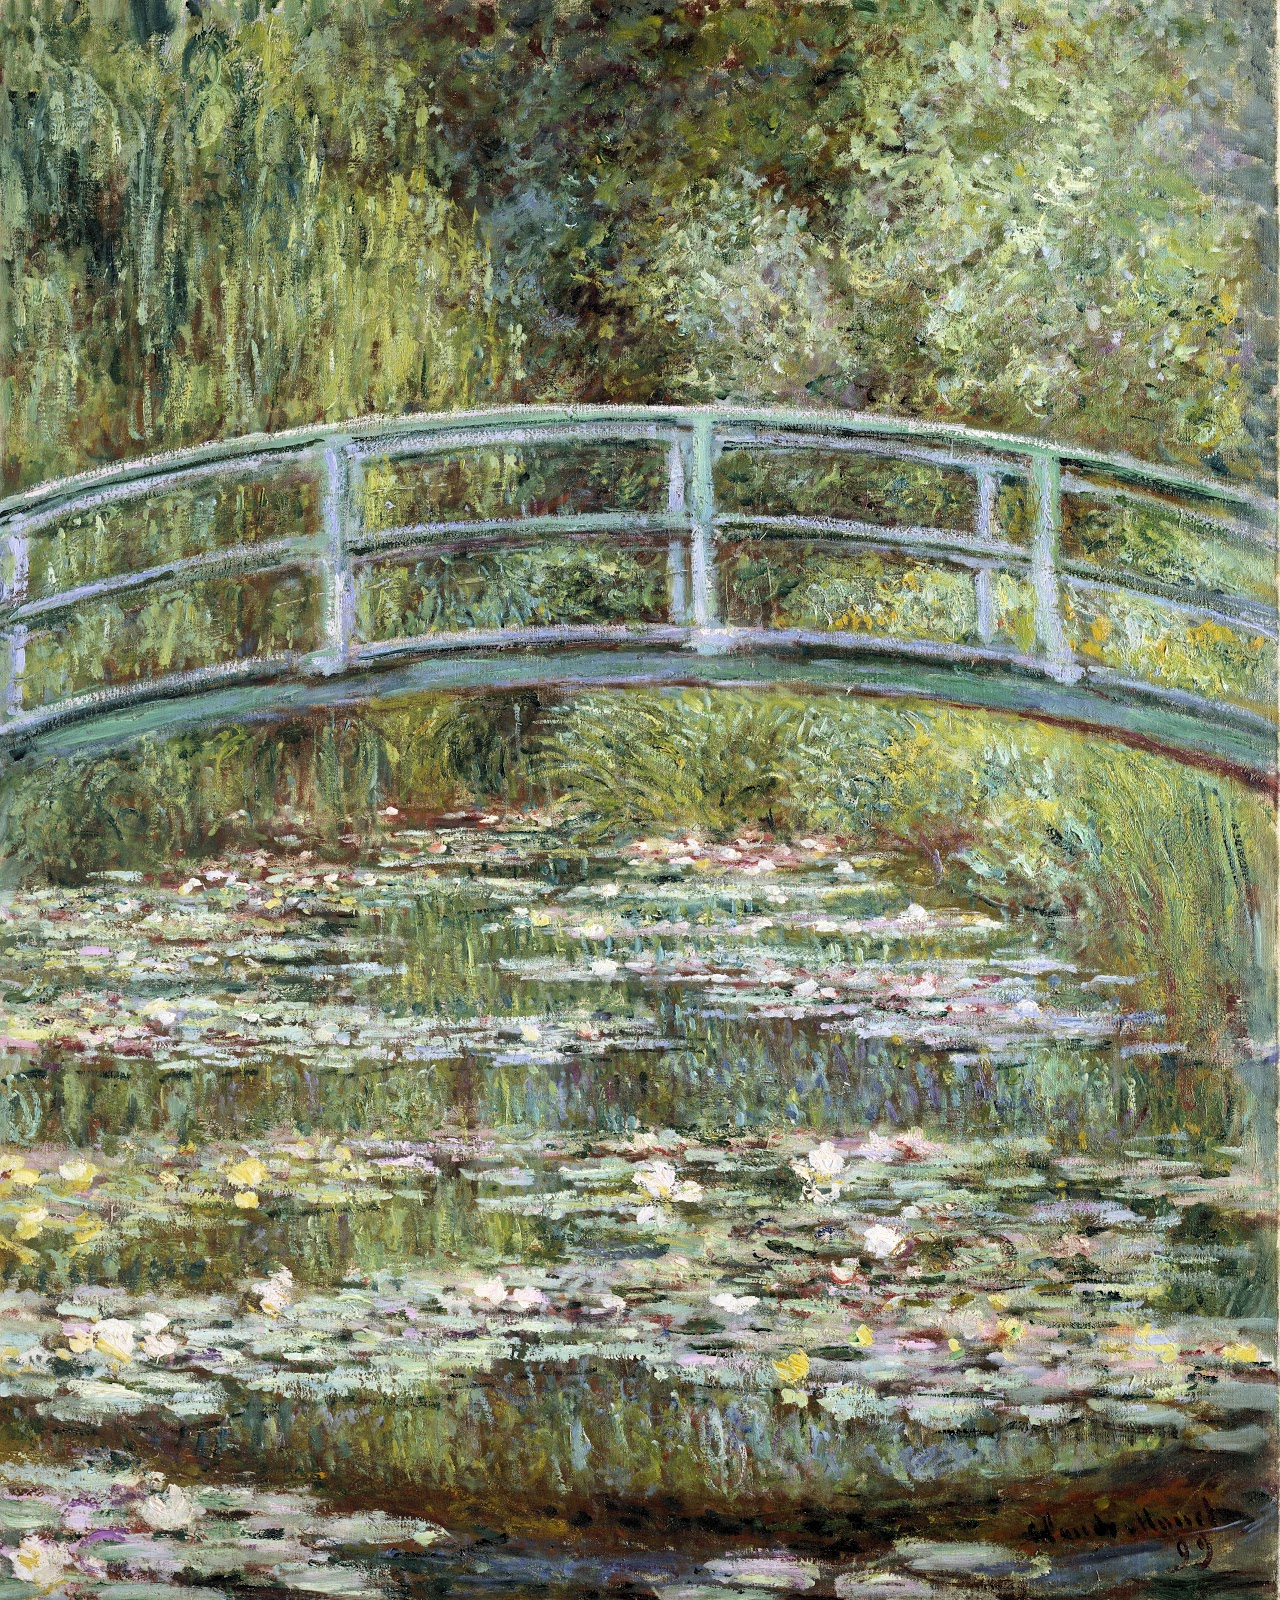 One in a series of 18 paintings that Claude Monet completed of the Japanese Bridge in Giverny. Photo: Wikimedia.org.